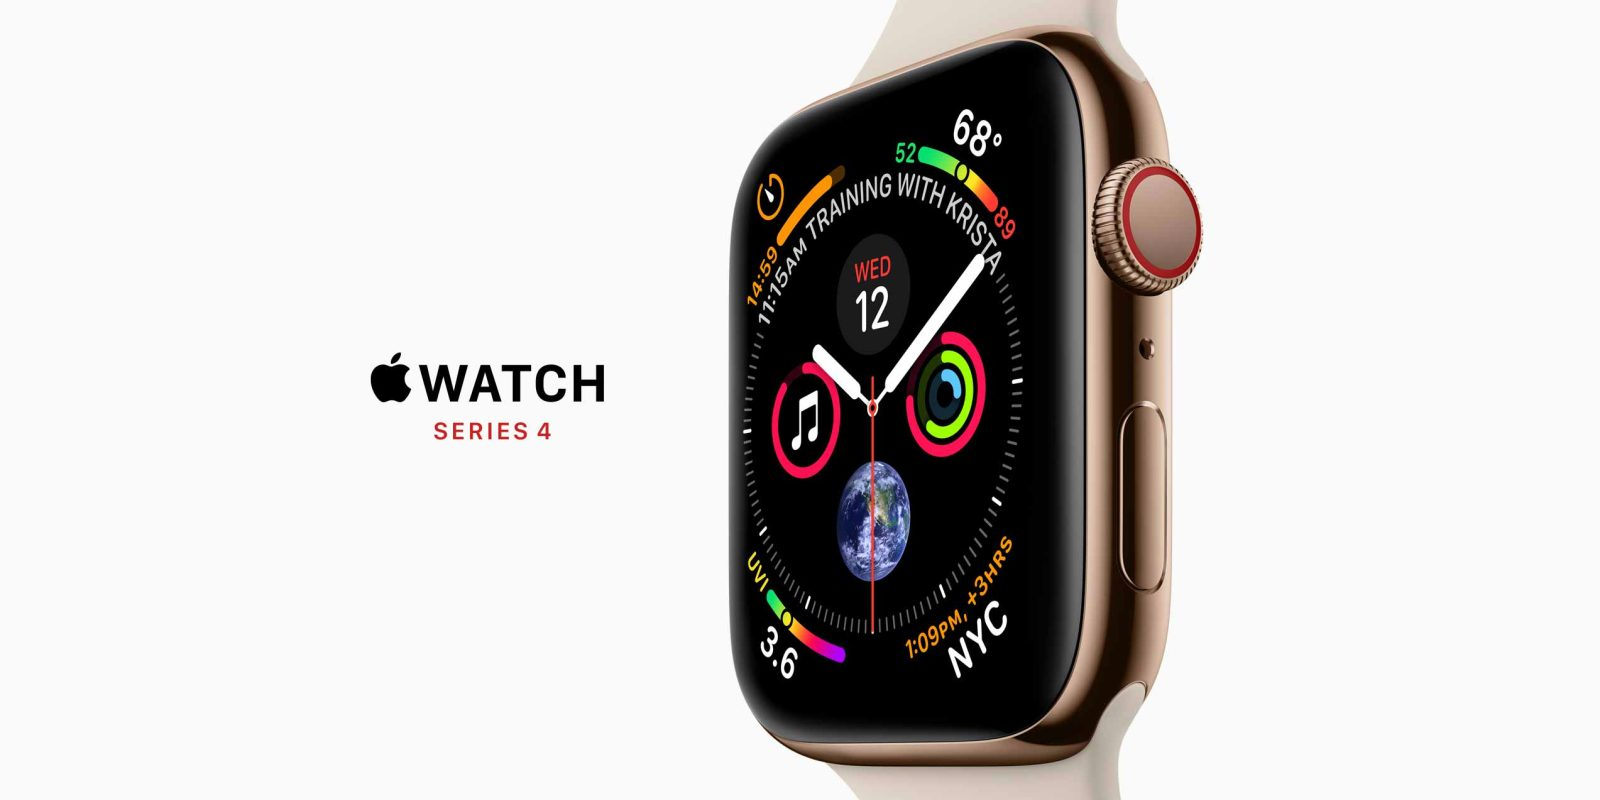 Apple Watch Series 4 hits new Amazon all-time lows with up to $129 discounts